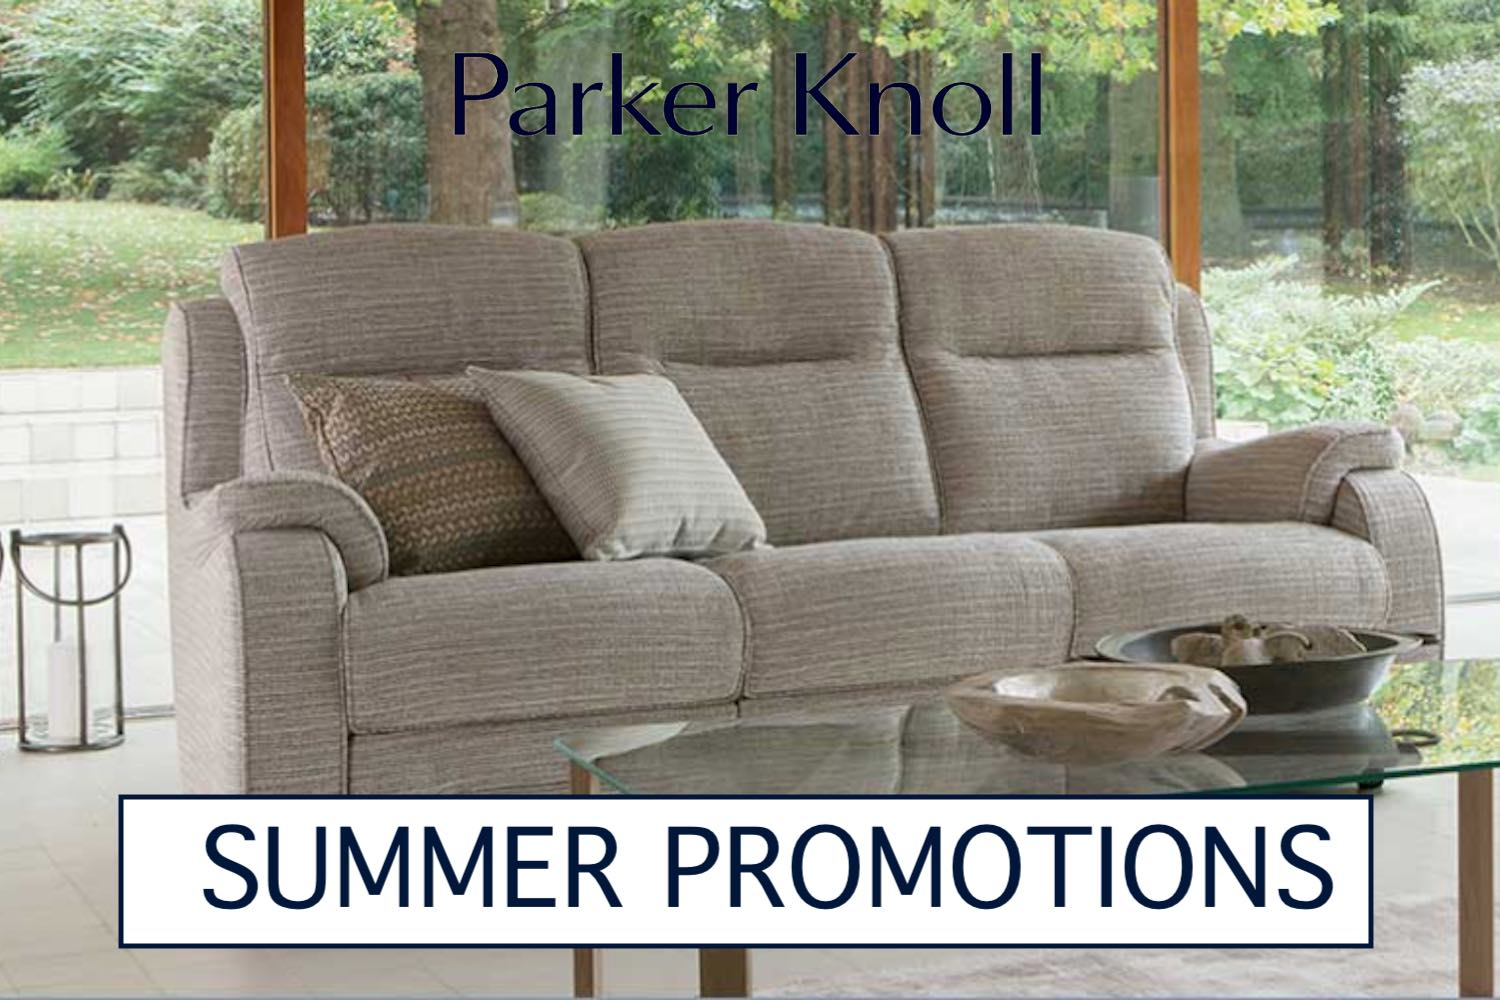 Parker Knoll summer promotions